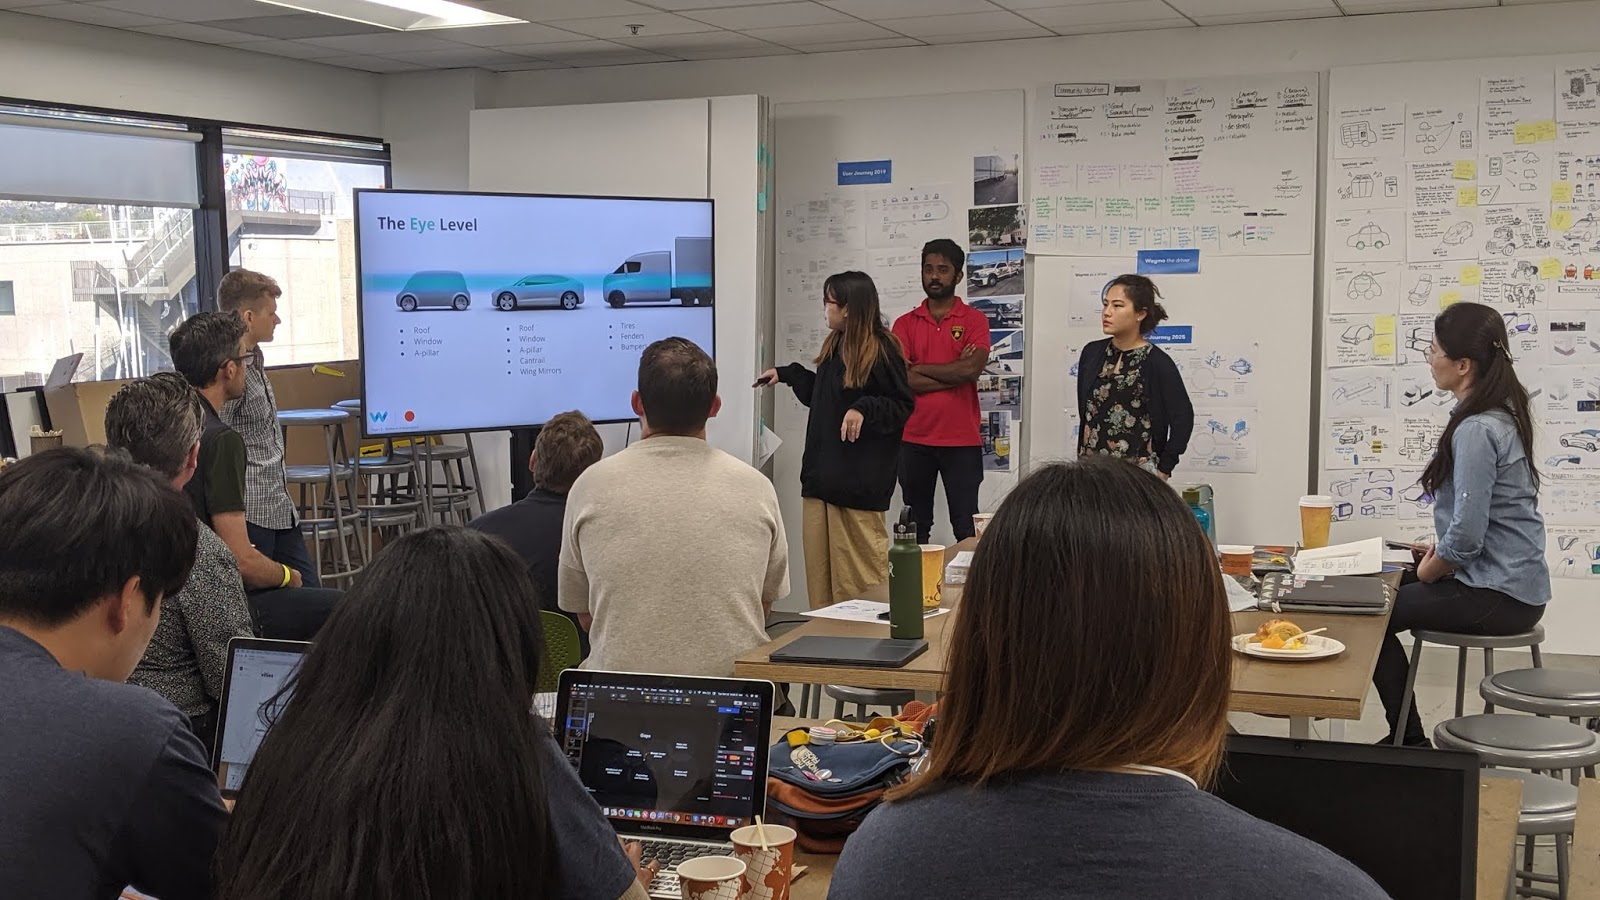 ArtCenter students presenting their midterms to Waymo's Head of Design, YJ Ahn. Image courtesy of Waymo